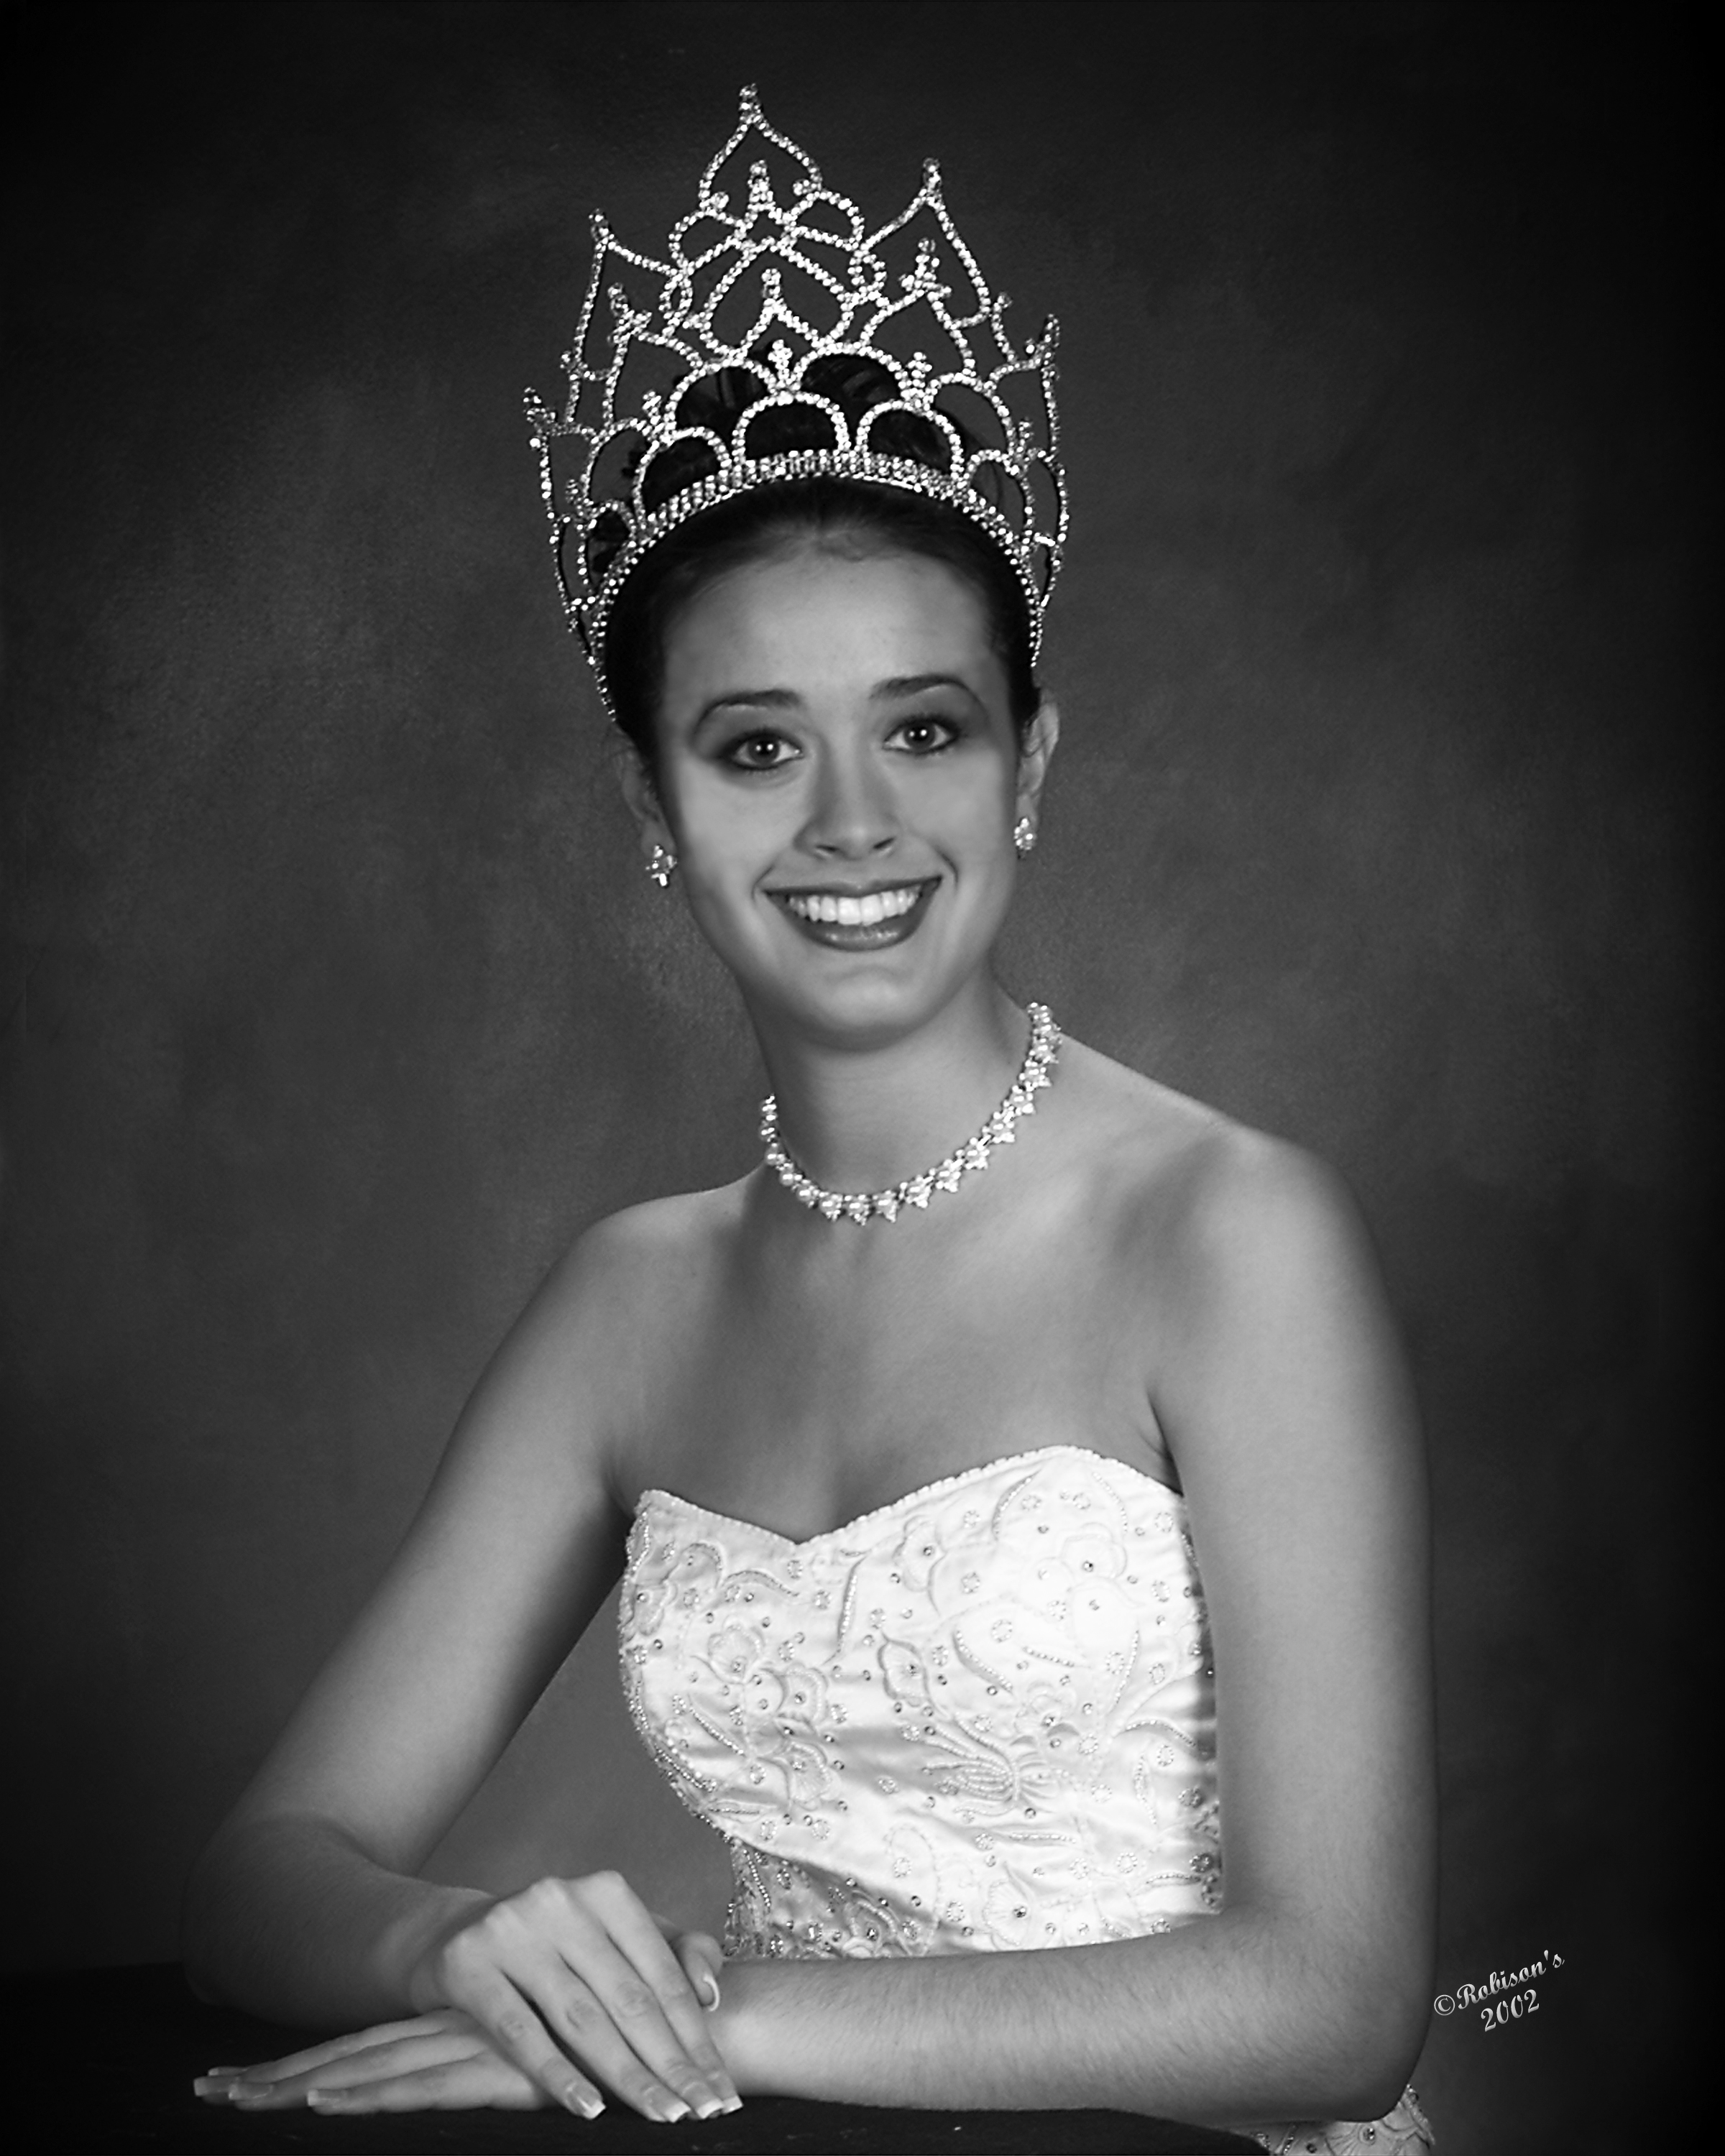 Katy Hicks - Miss Buna 2001